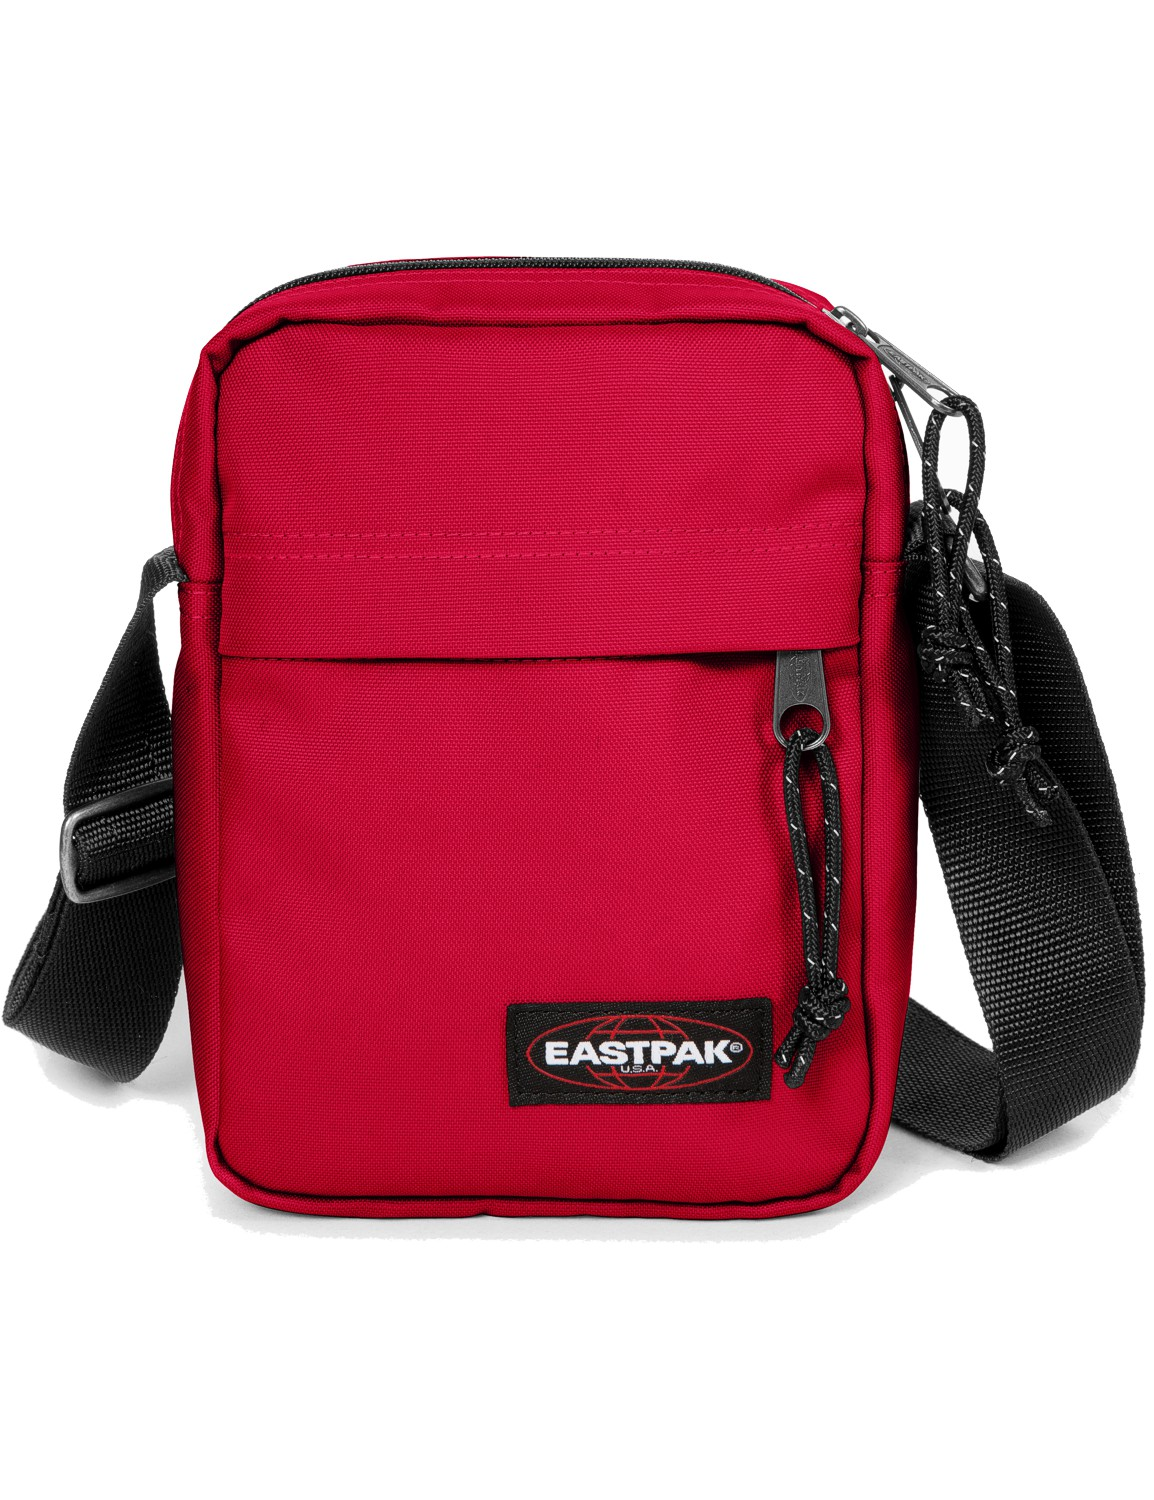 Eastpak Schulter- Umhängetasche »The One« Sailor Red Rot